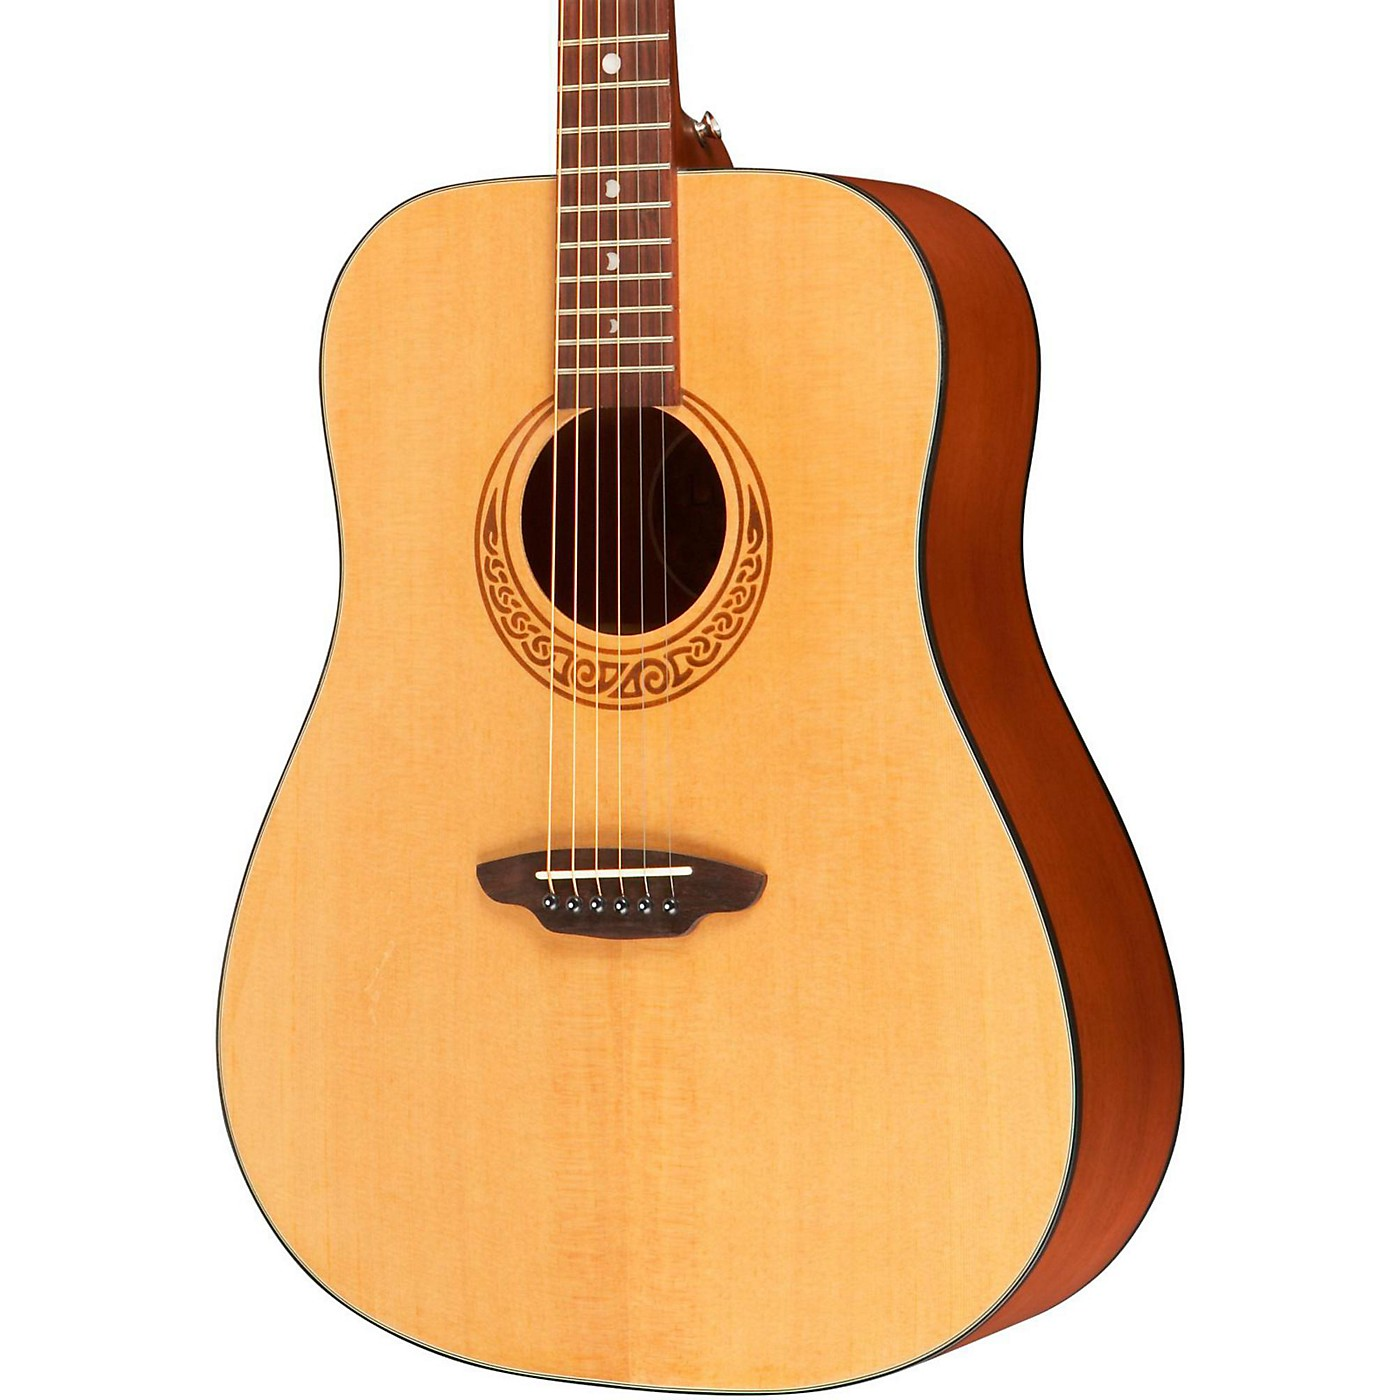 Luna Guitars Gypsy Muse Acoustic Guitar Package thumbnail